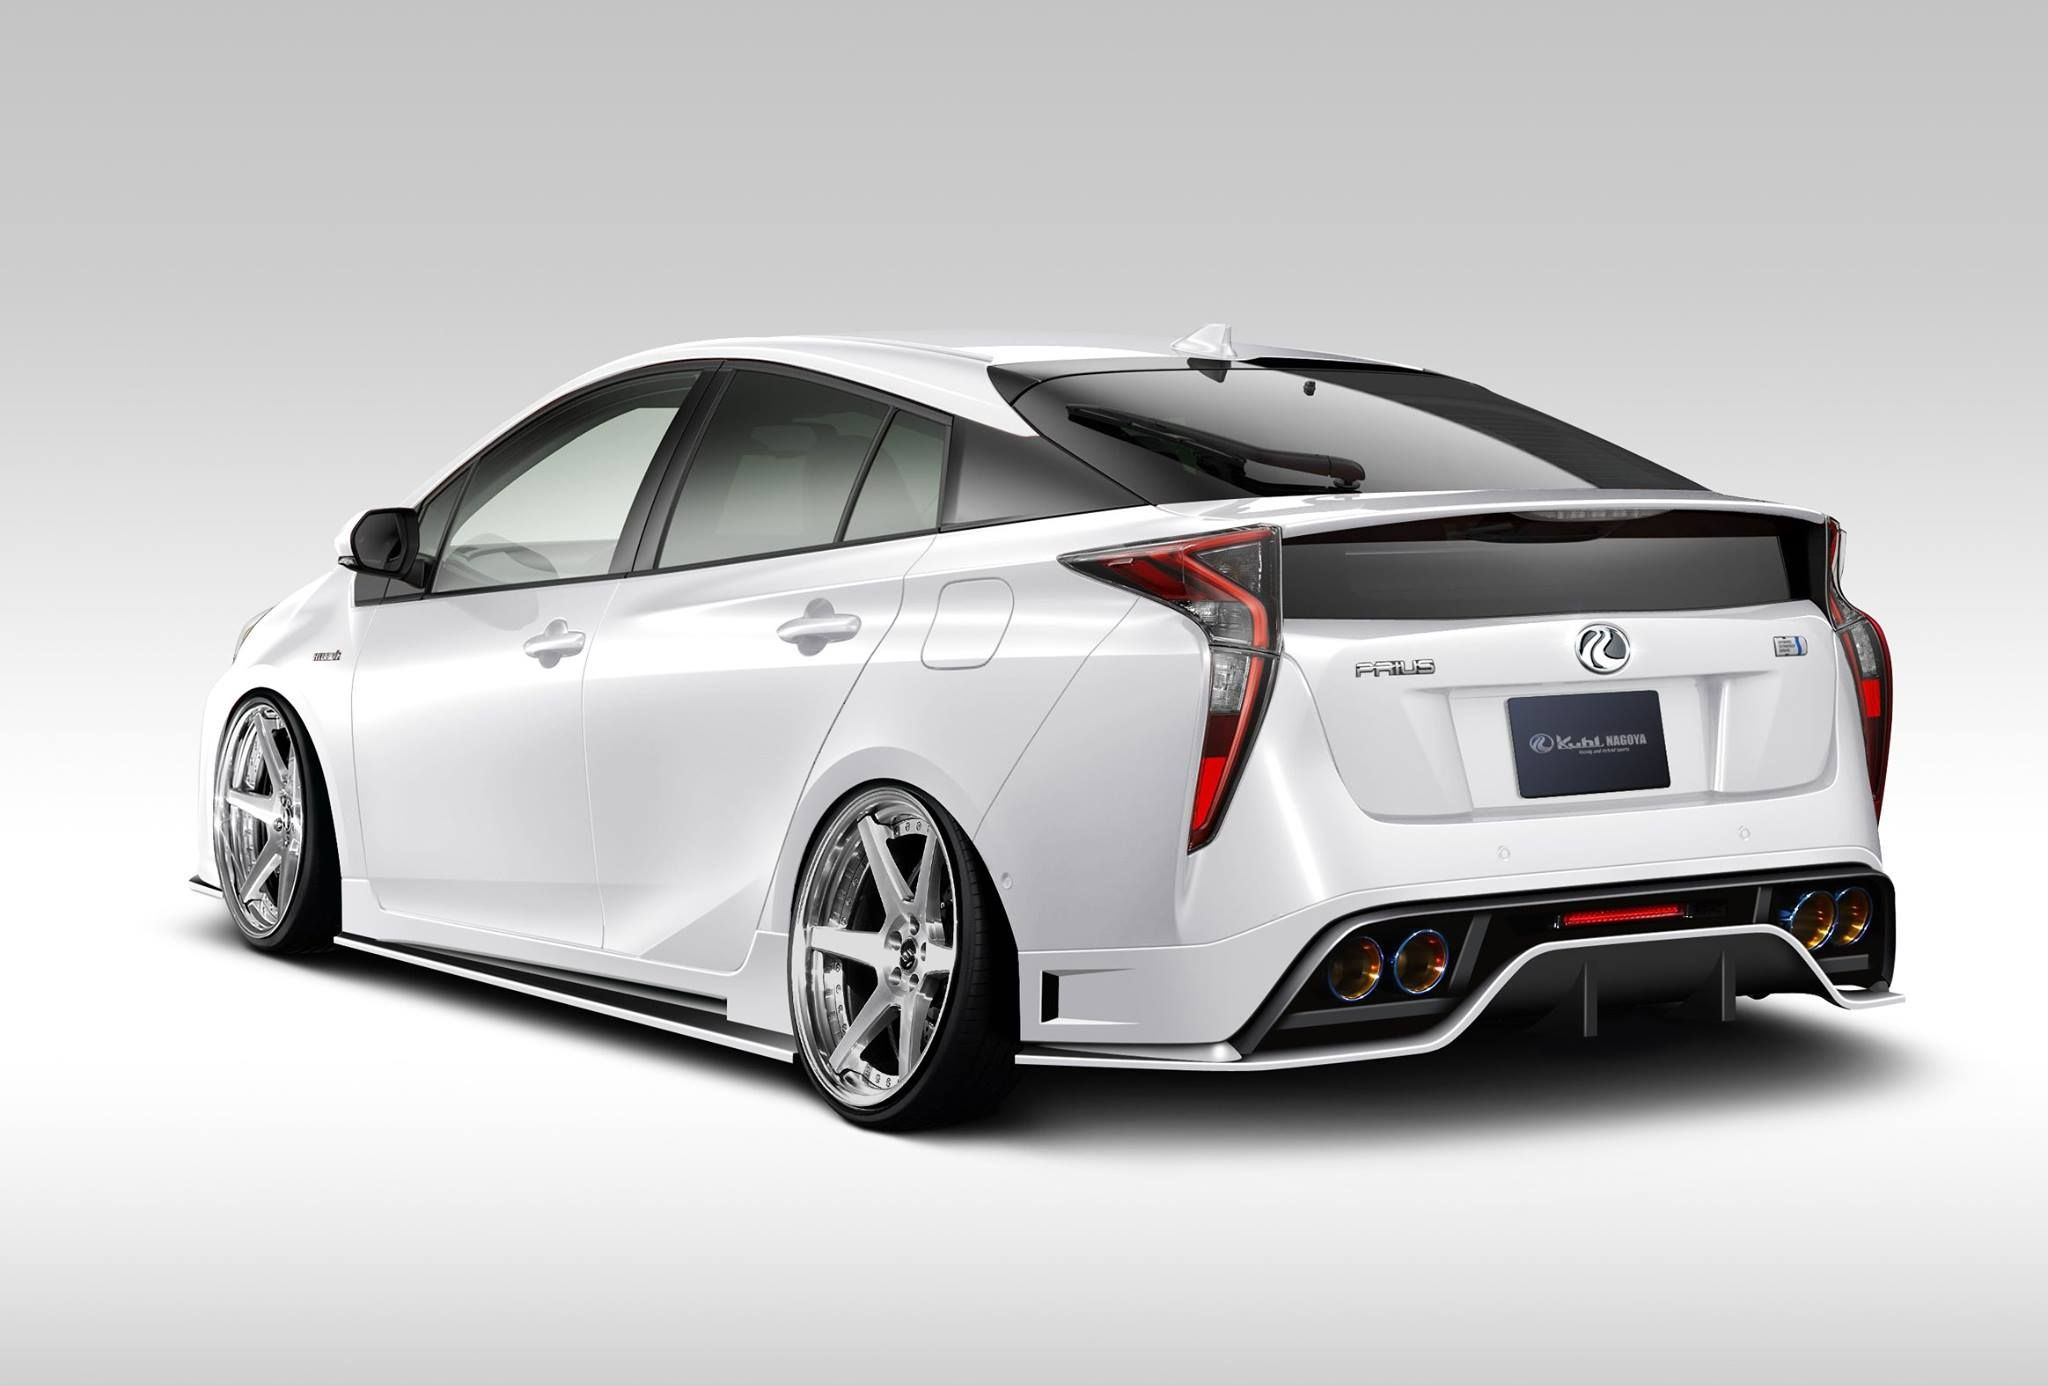 Toyota prius toyota prius the best car in the world pinterest toyota prius toyota and cars